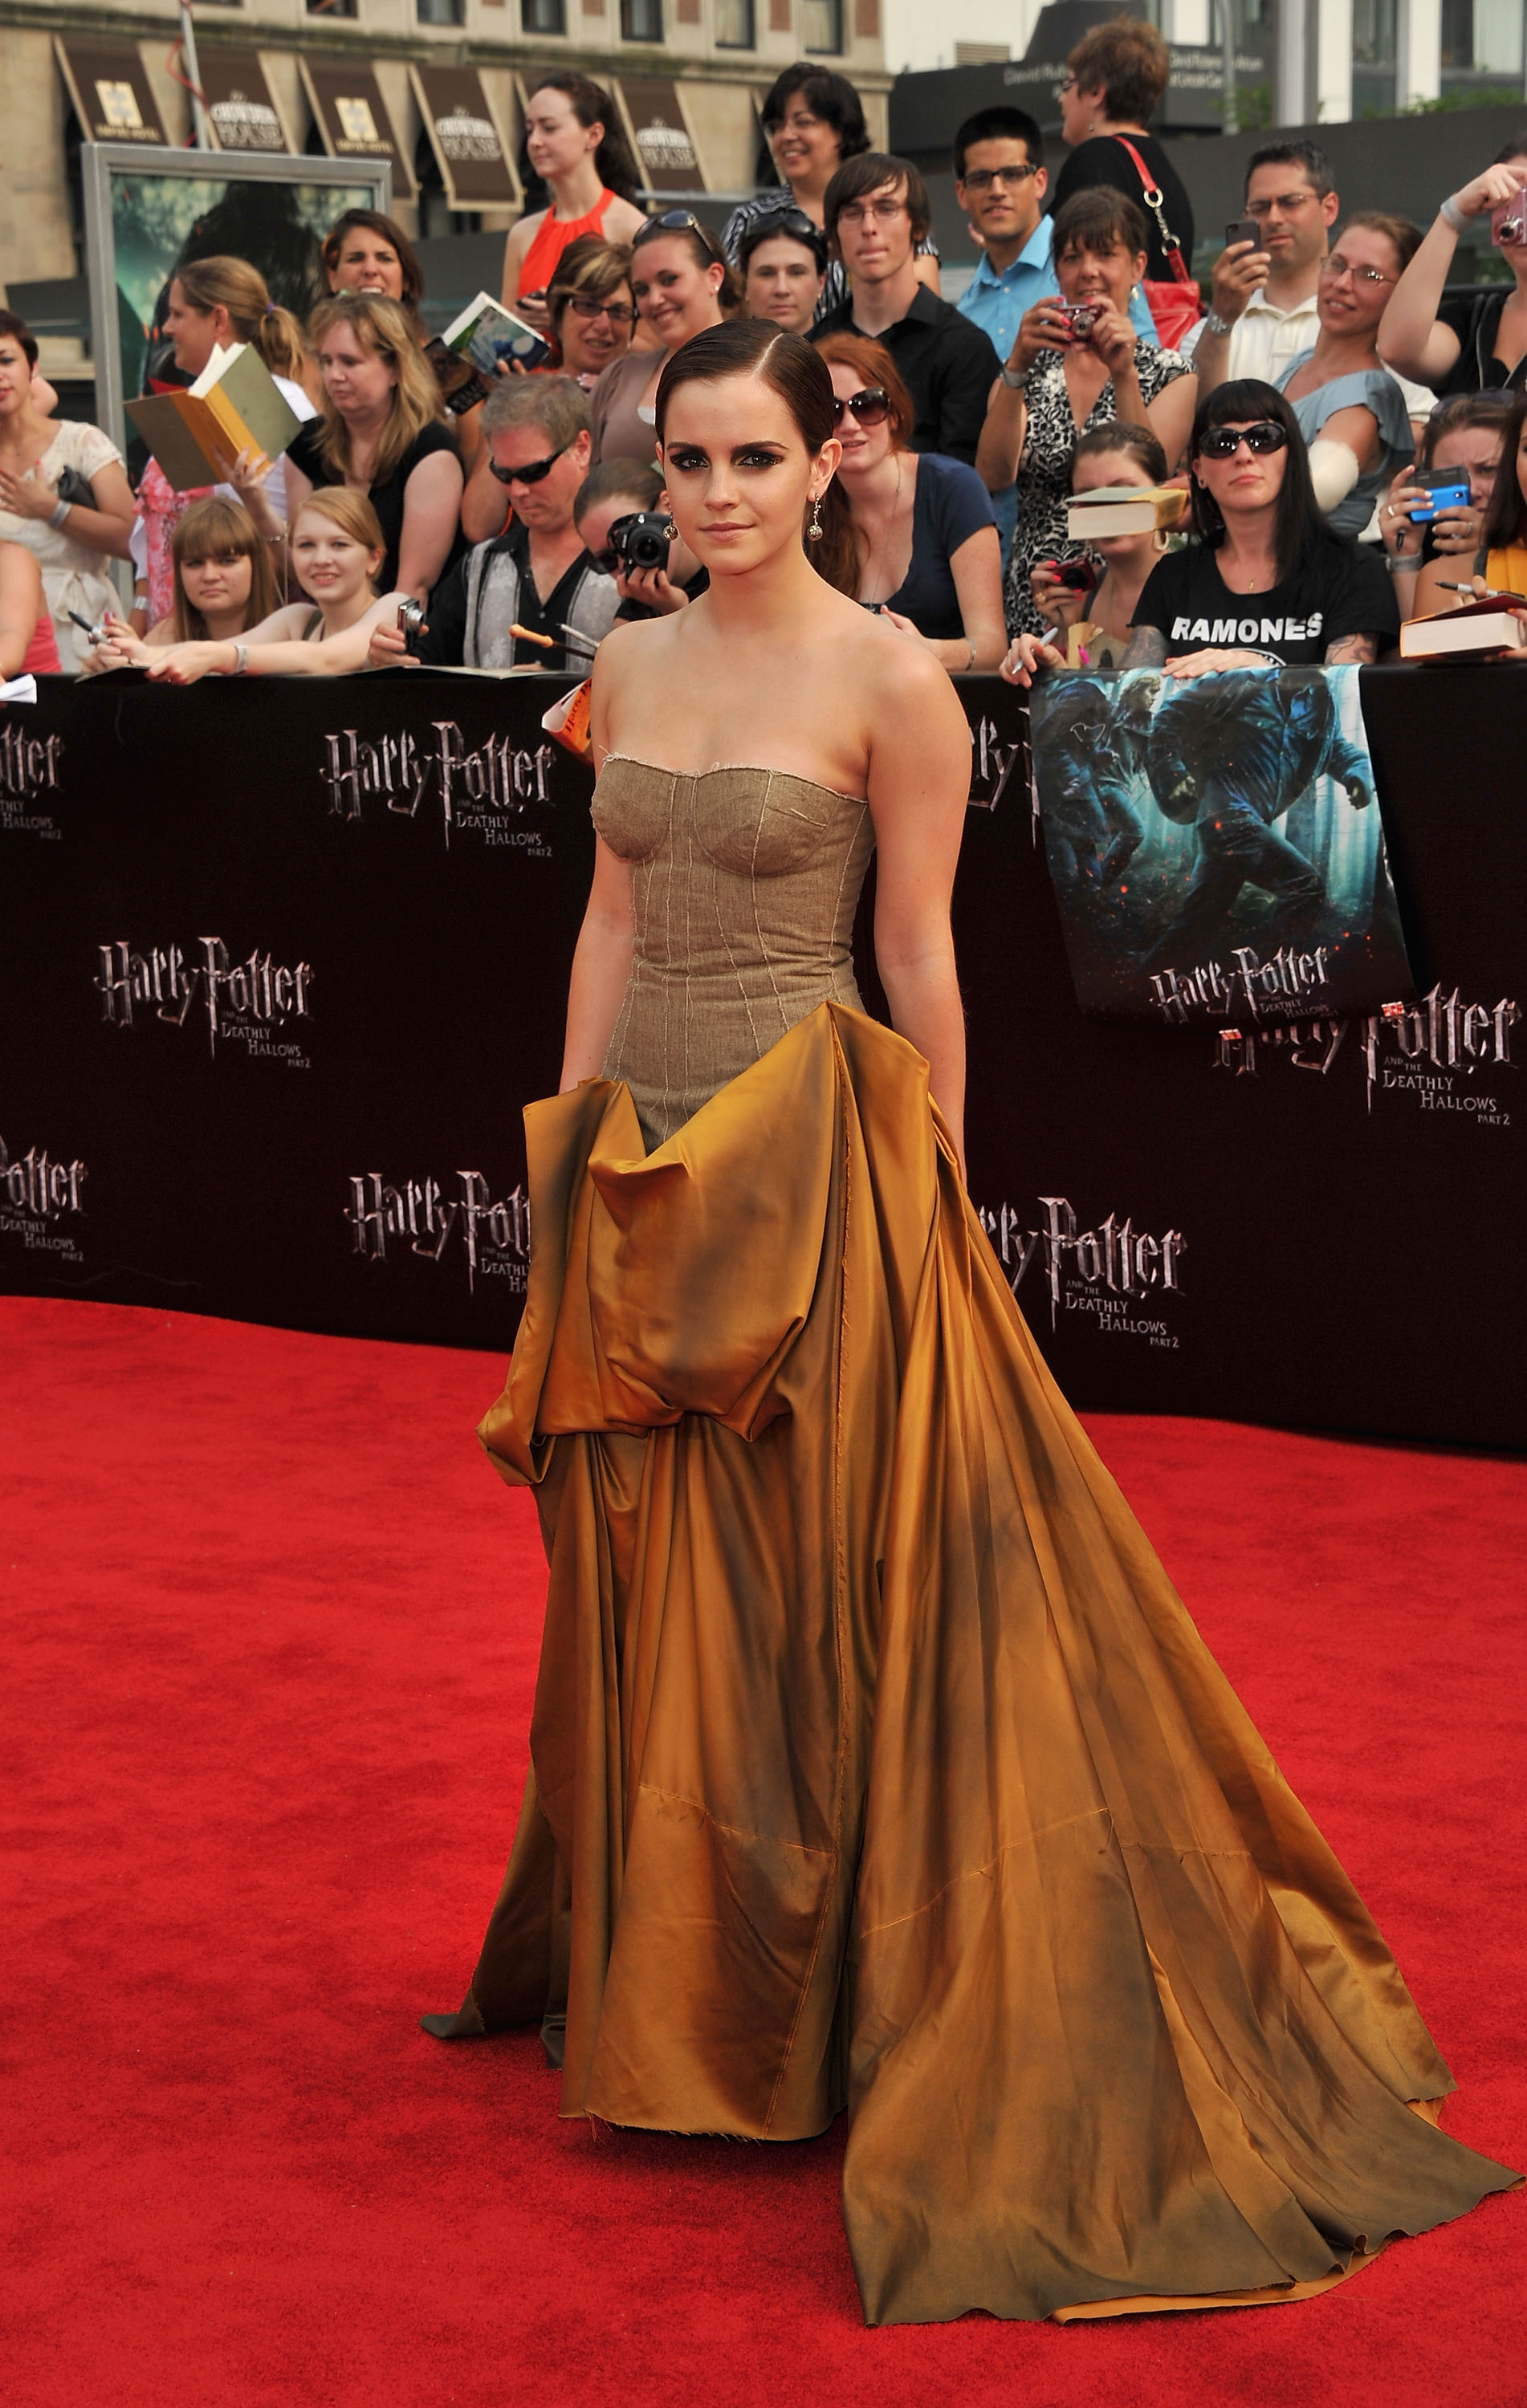 Emma Watson Harry Potter And The Deathly Hallows Part 2 Premiere Dress Emma Watson in Bottega...